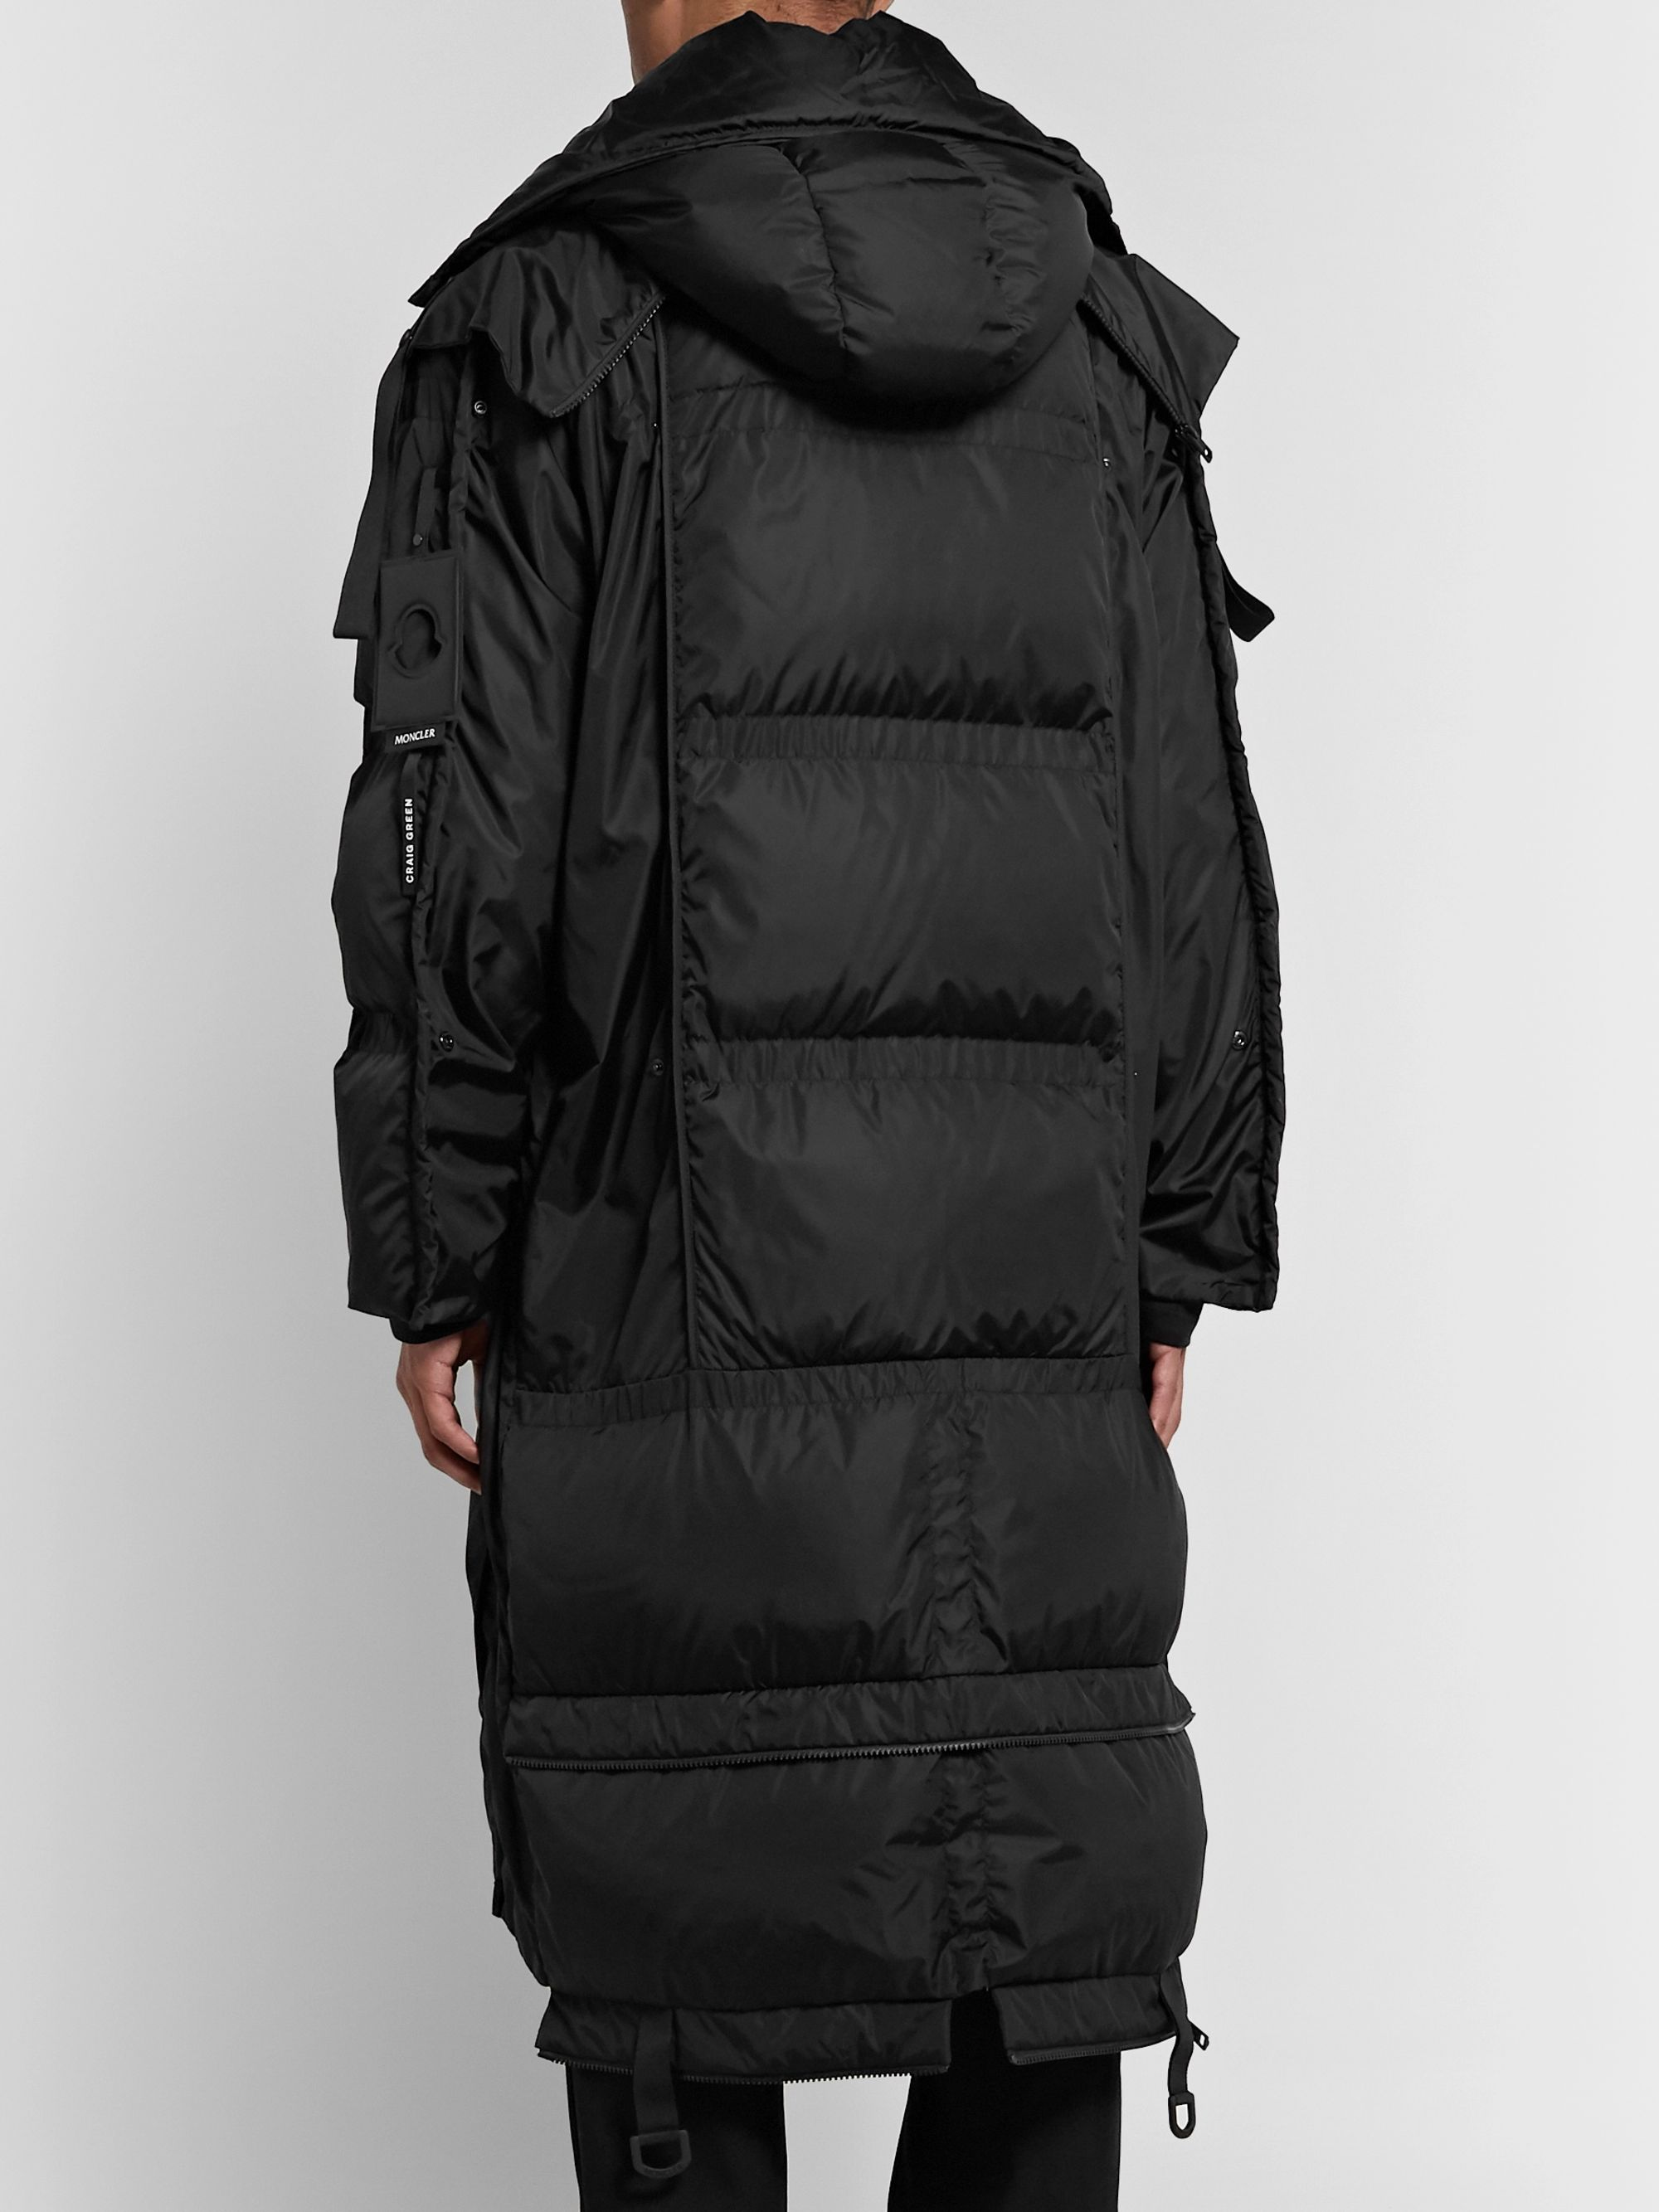 Moncler Genius 5 Moncler Craig Green Sullivan Quilted Shell Hooded Down Parka